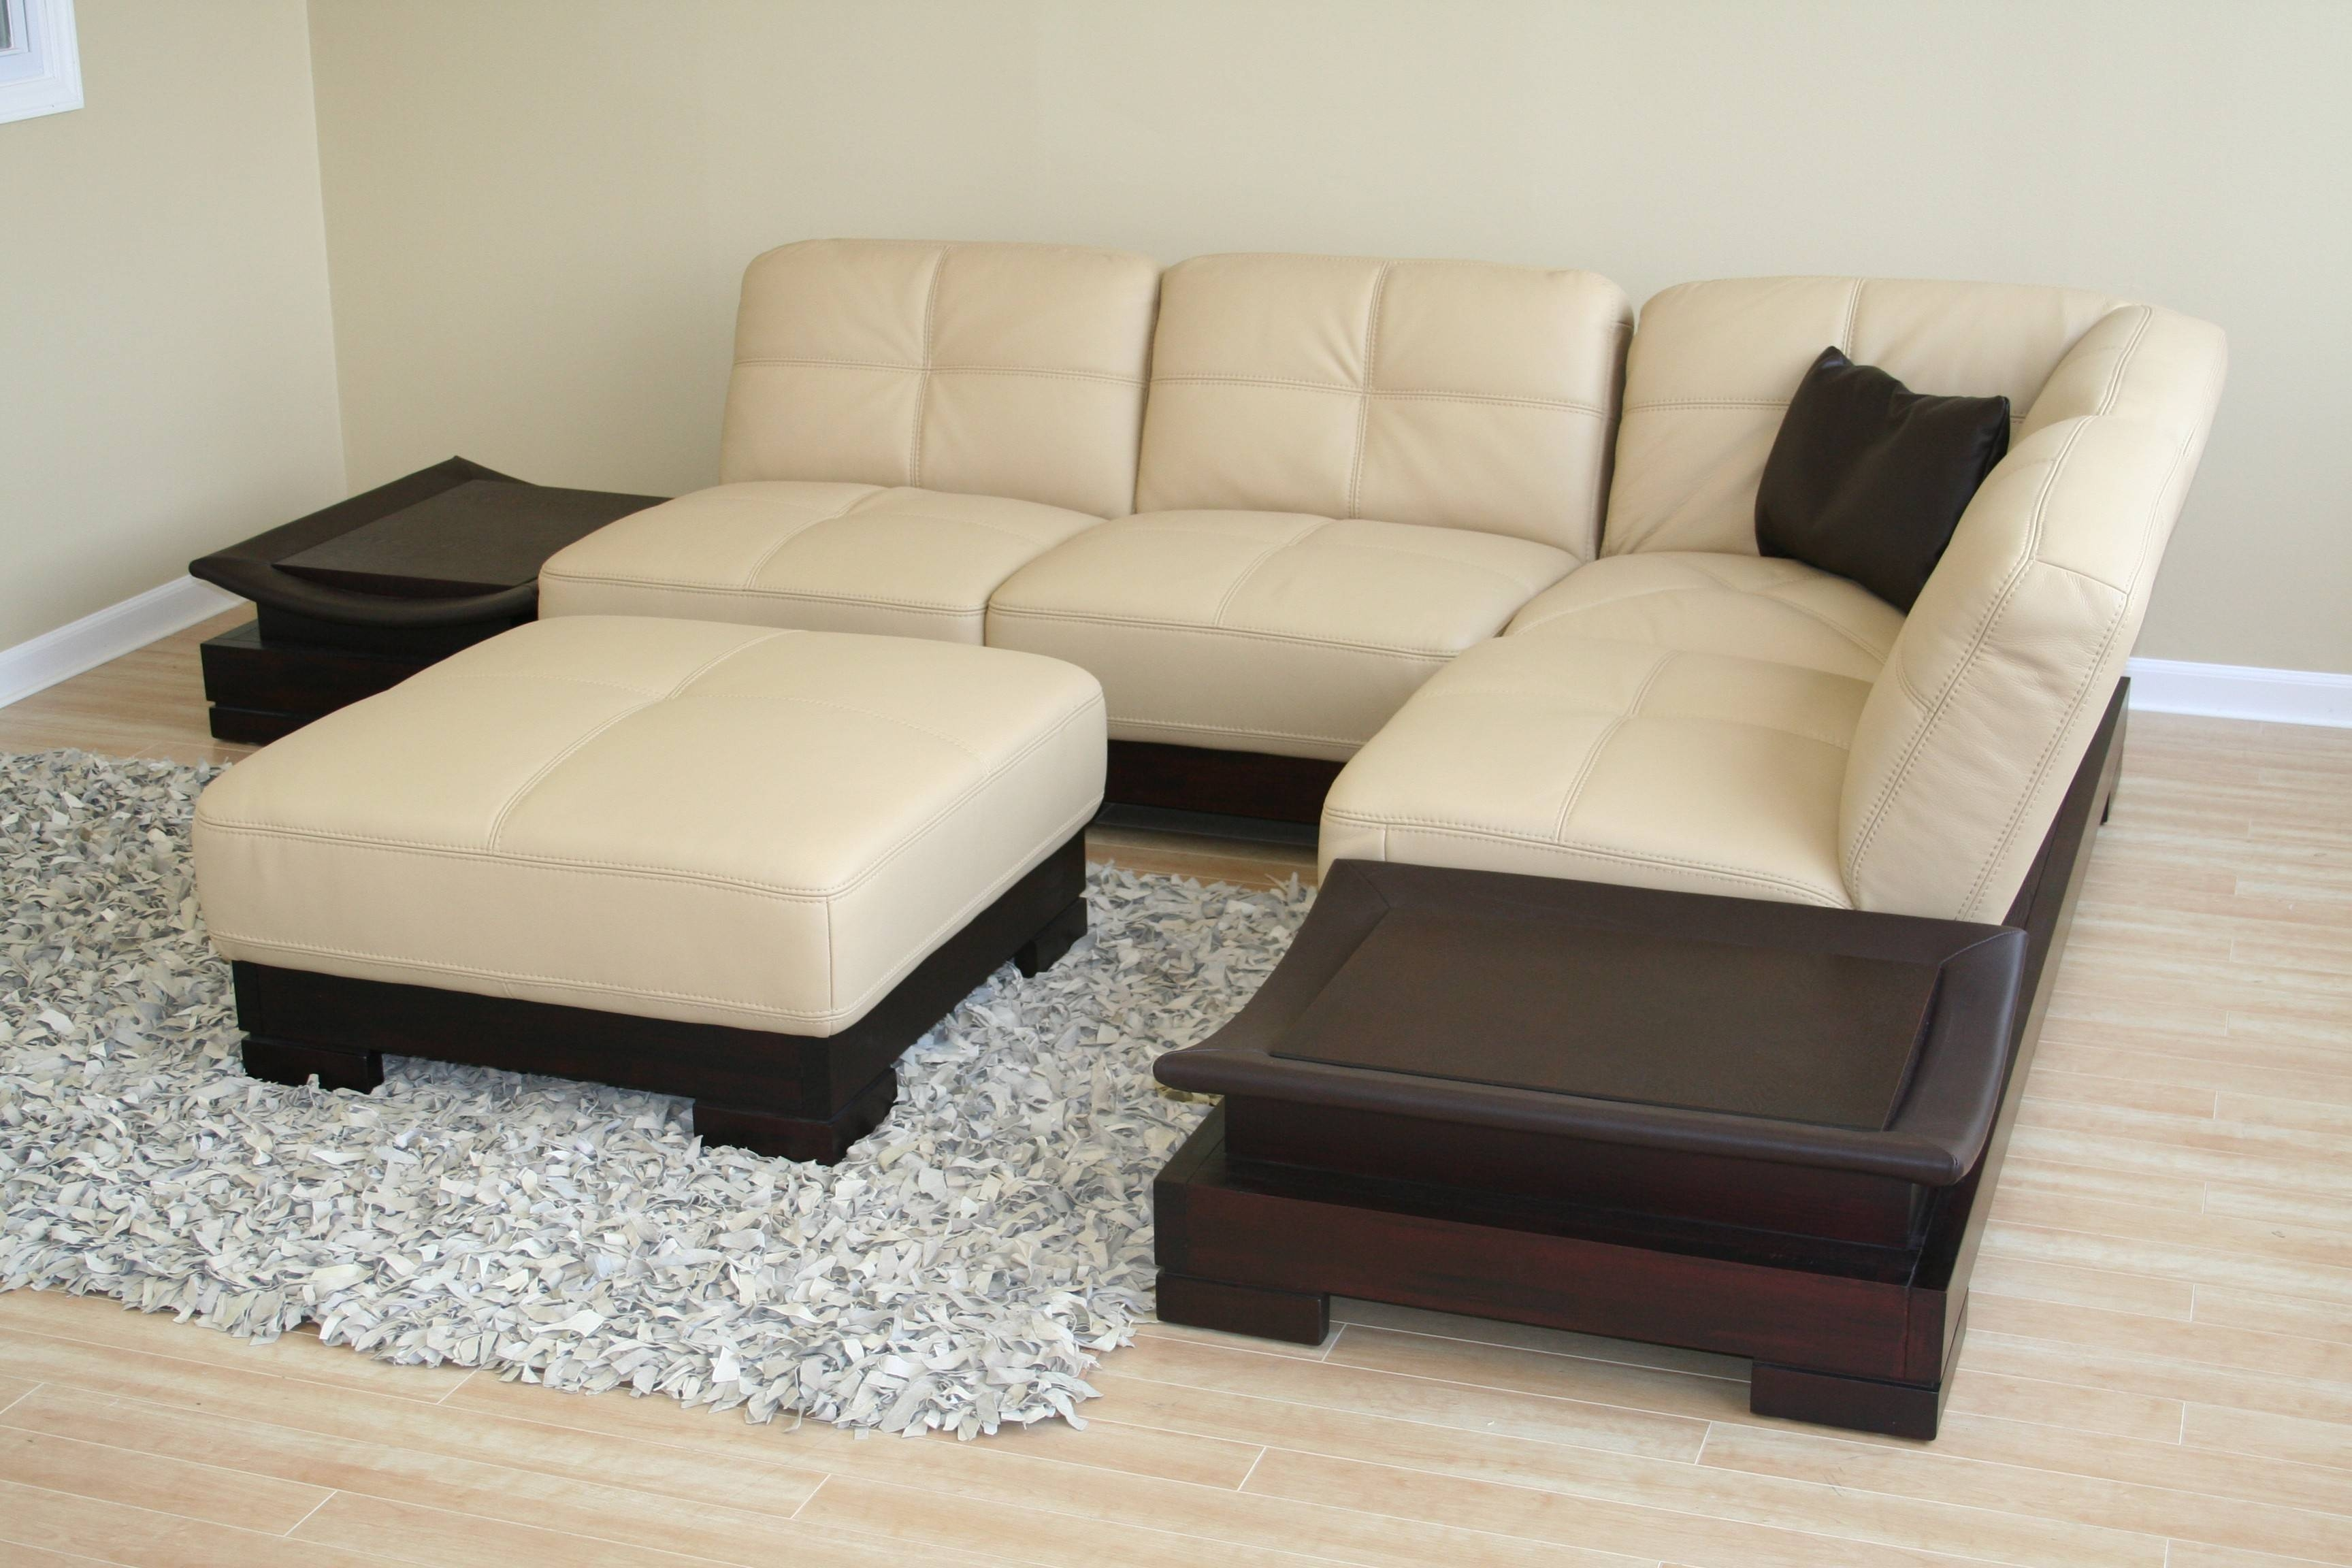 Small Sectional Sofa. Charming Small Sectional Sofa For Modern inside Small Scale Sofas (Image 9 of 15)